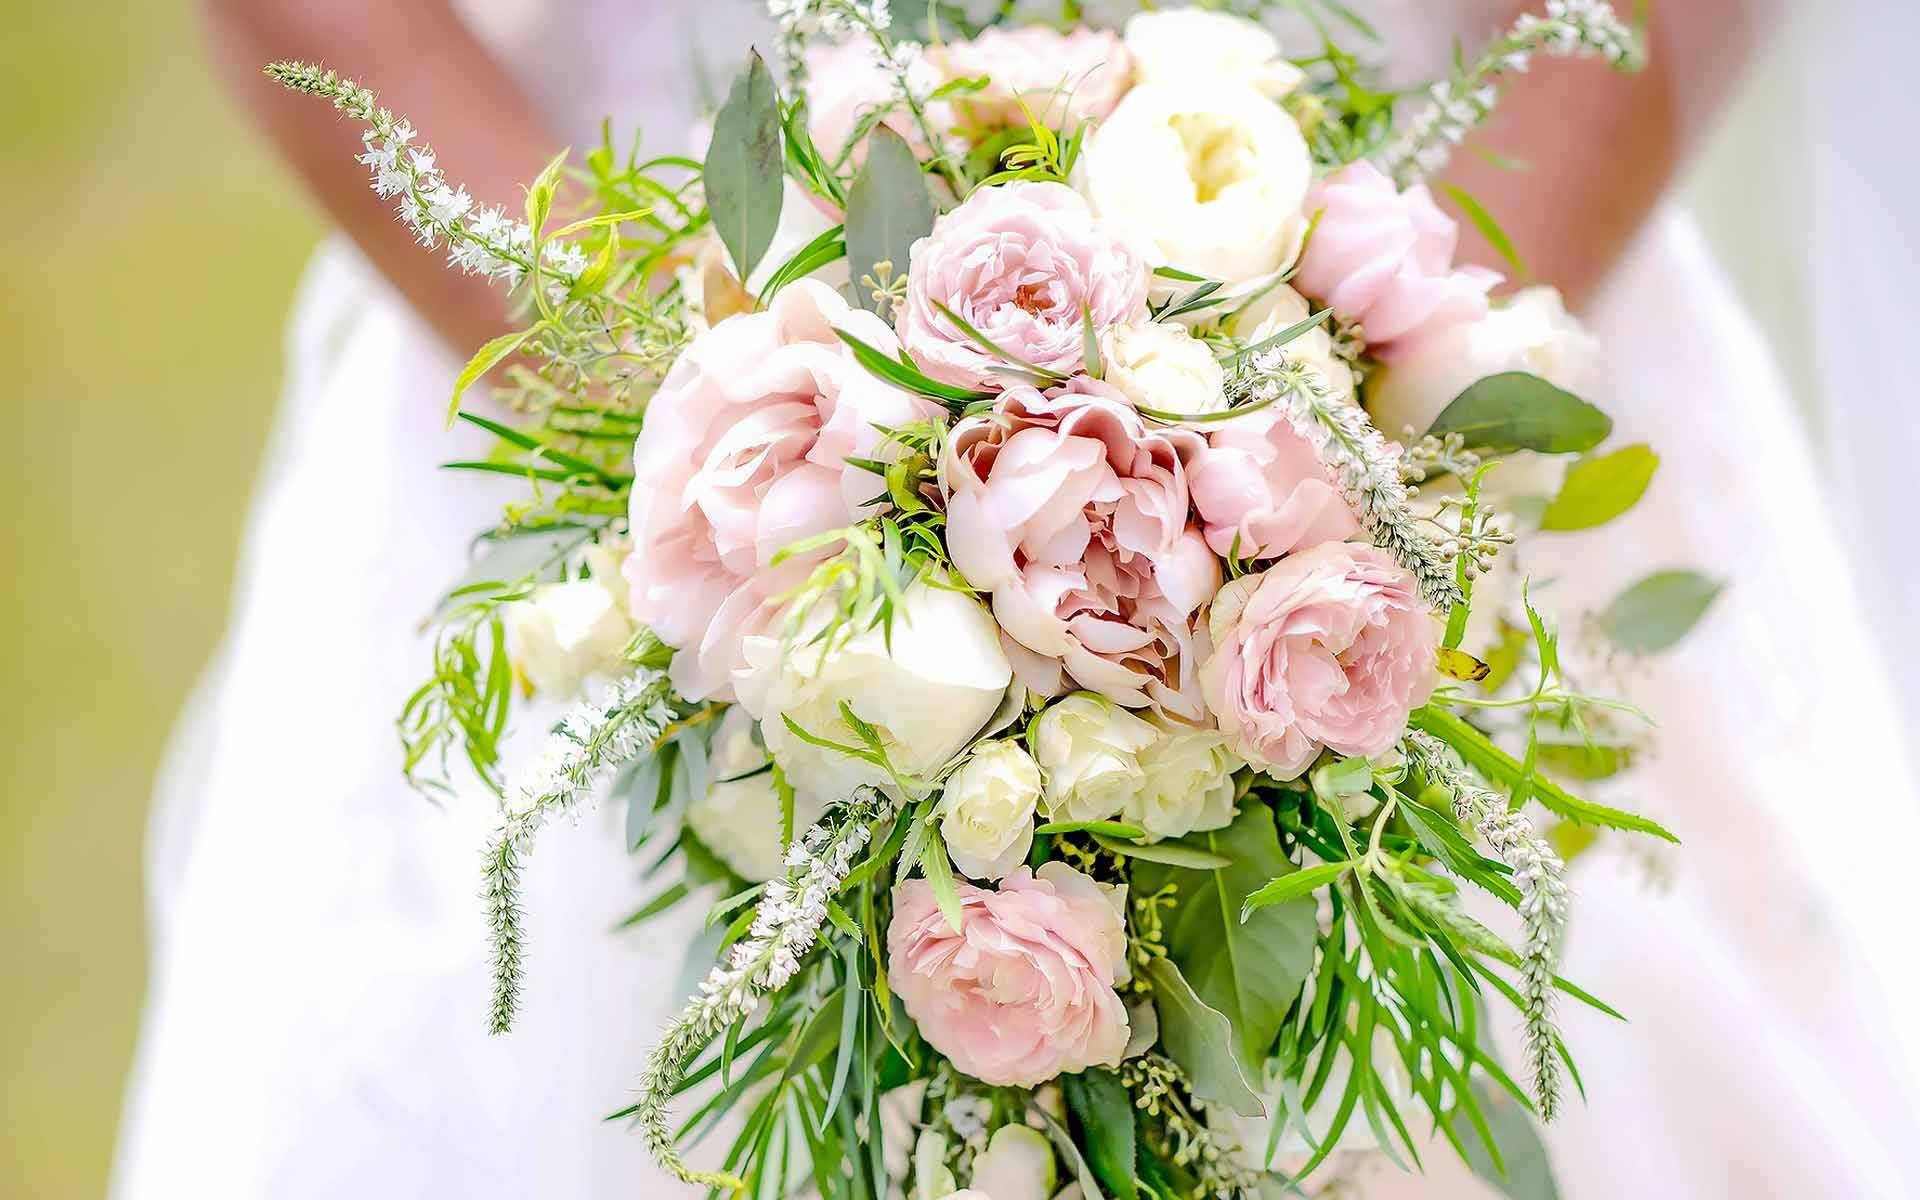 Bridal-Bouquet-Is-The-Finishing-Touch-To-A-Brides-Big-Day-by-Diamond-Events